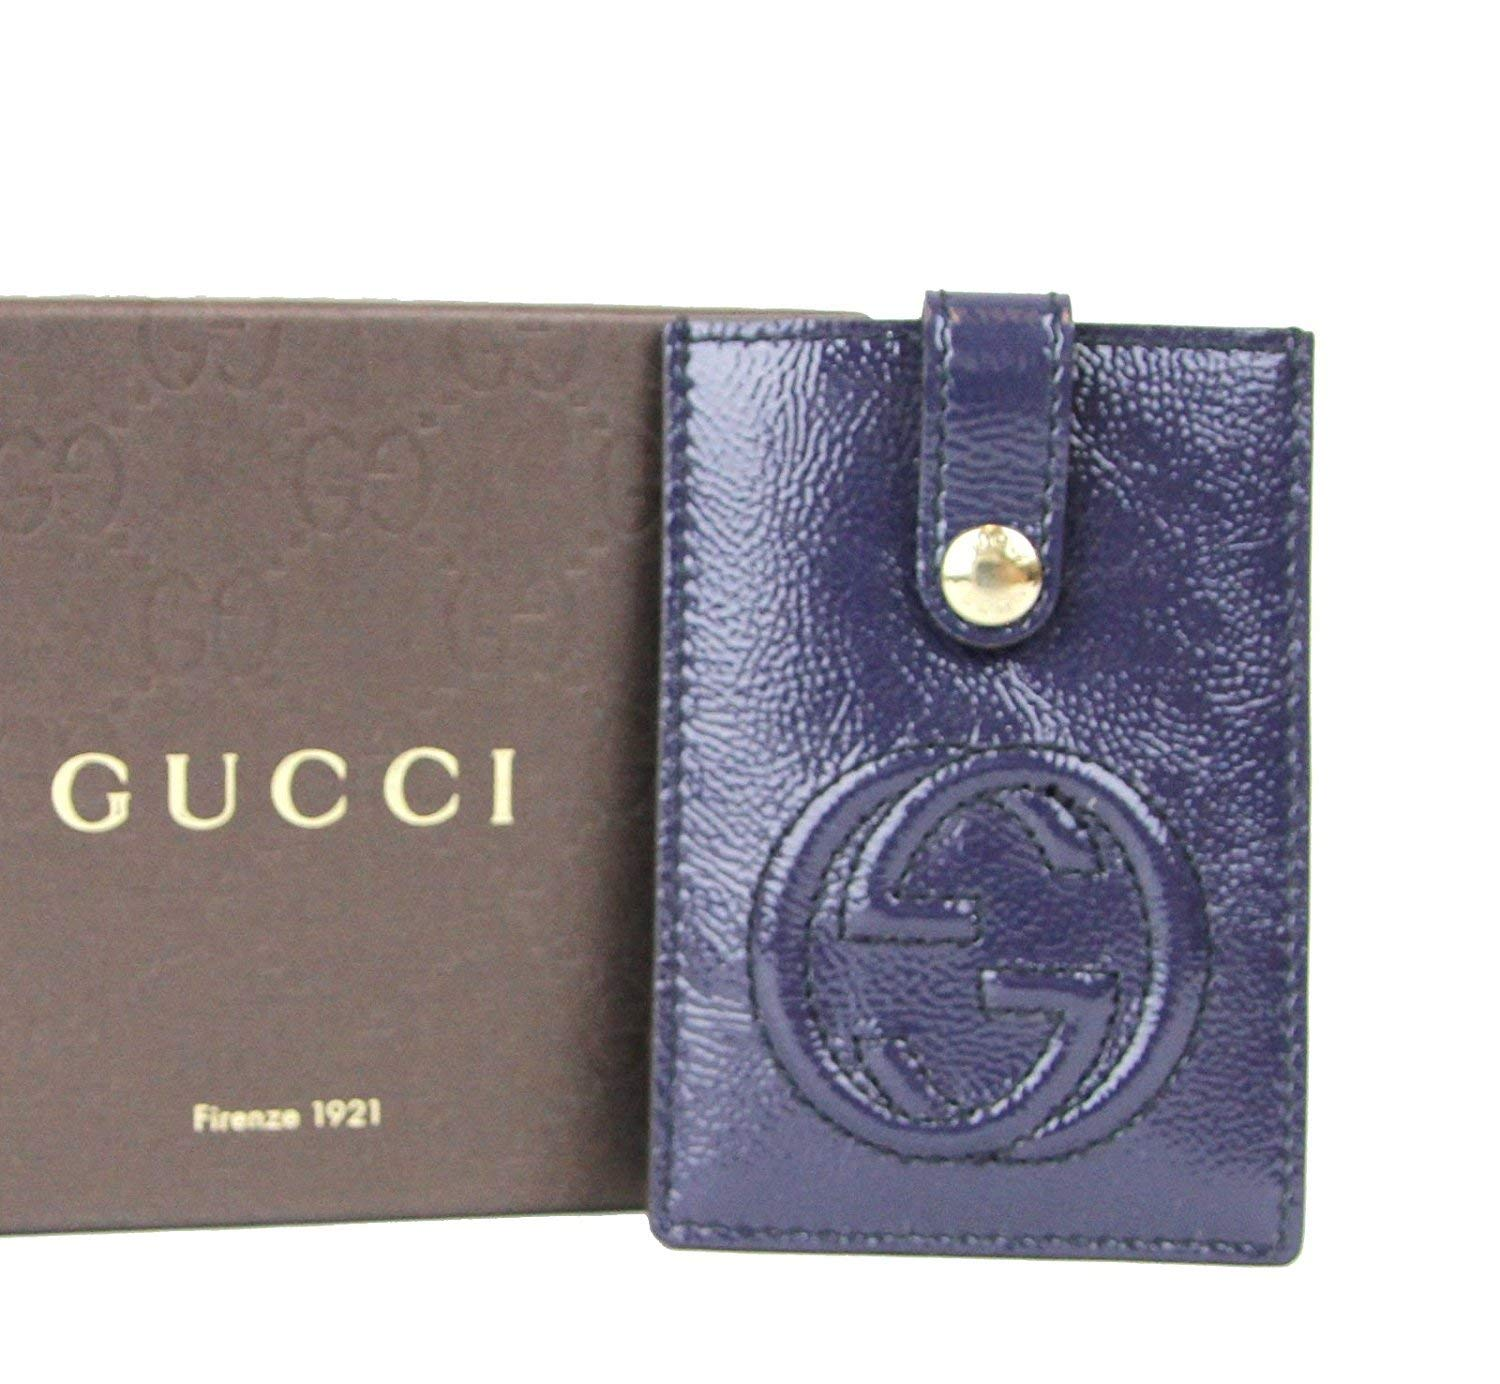 Gucci Women's Soho Blue Patent Leather Card Case Pouch 338331 4233 by Gucci (Image #5)